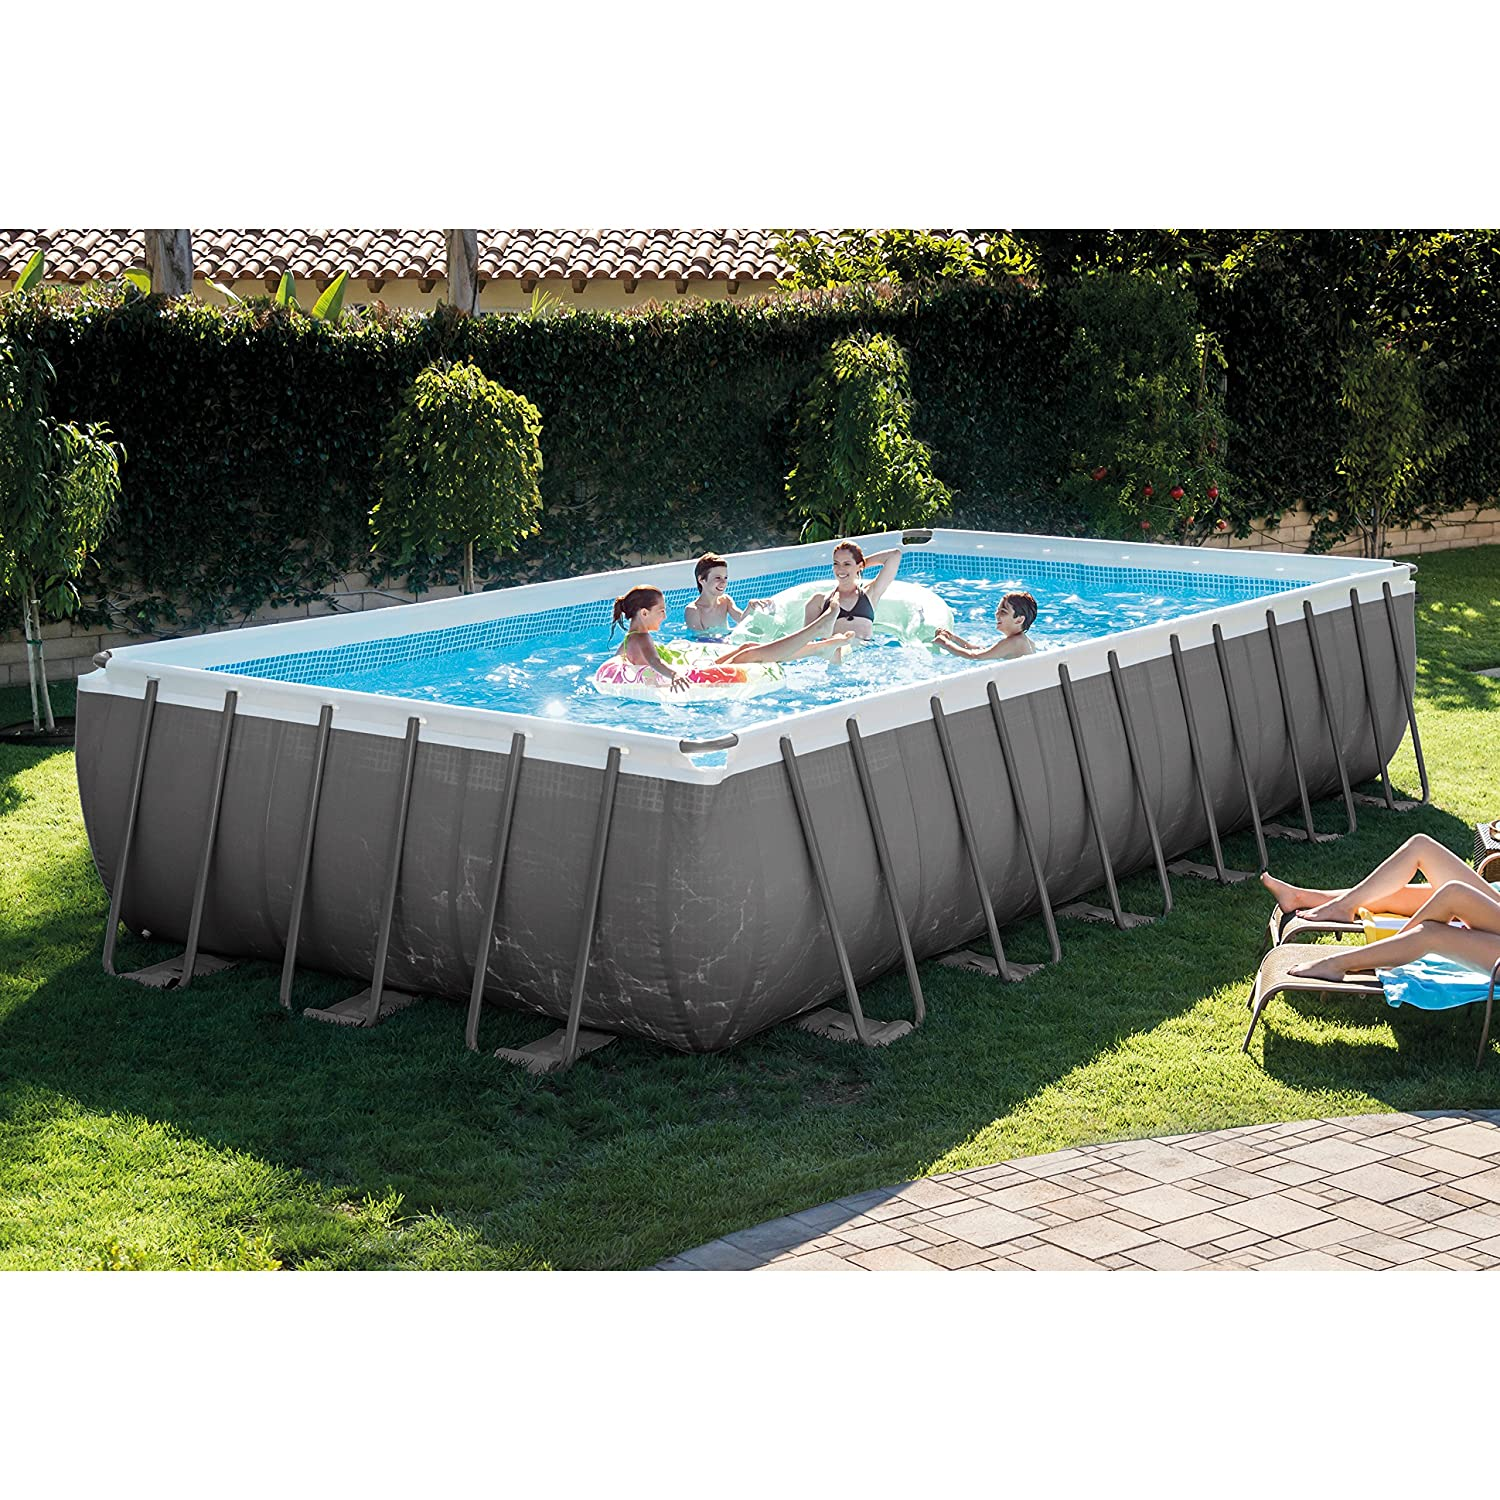 Best above ground pool set Intex 24ft X 12ft X 52in Best rectangular above ground pools